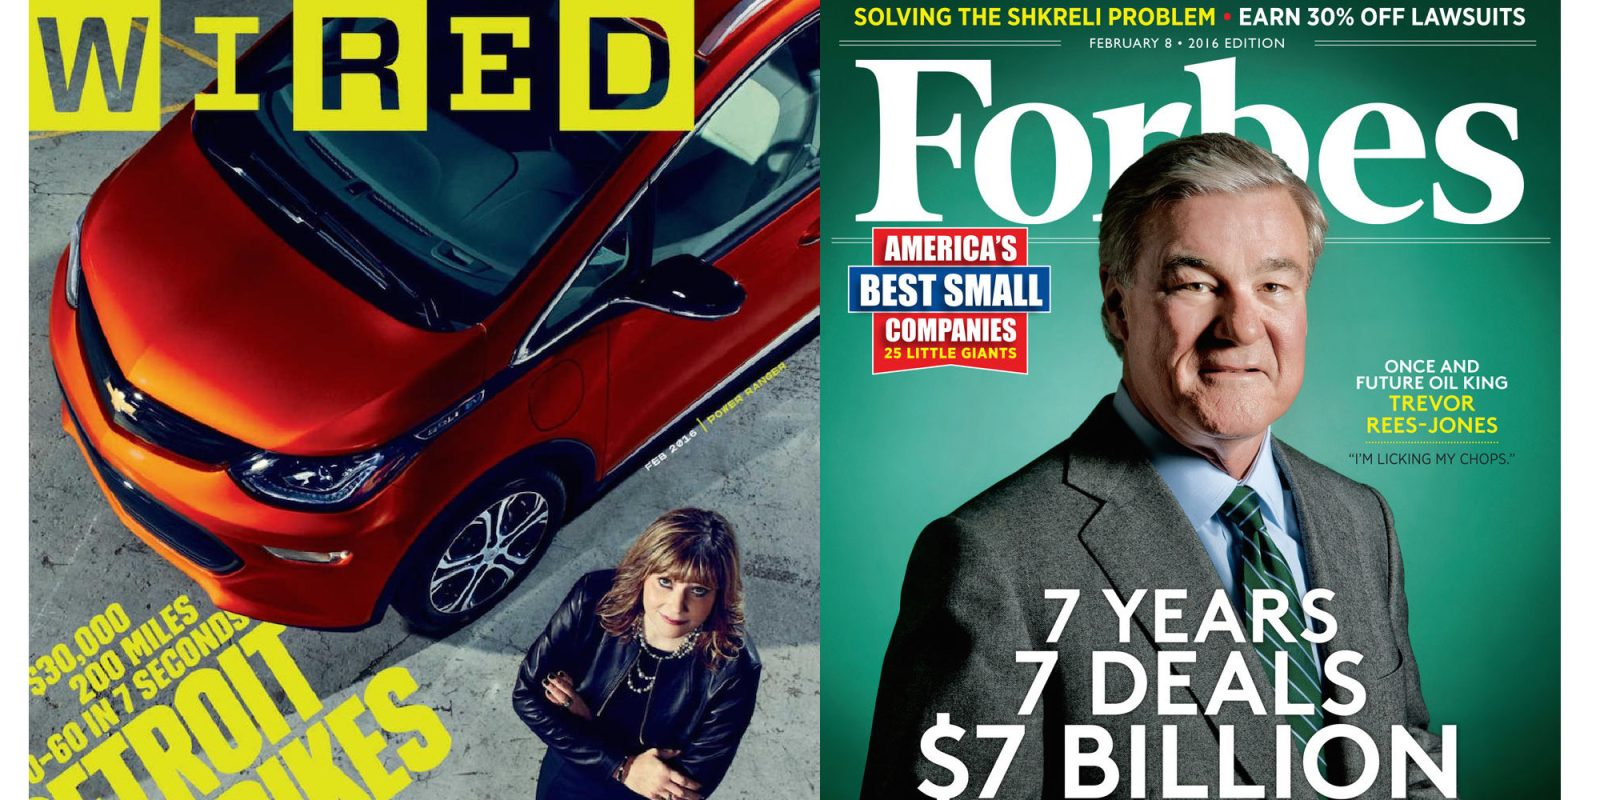 Magazine subs from $5/yr: Wired, Forbes, The Atlantic, many more ...